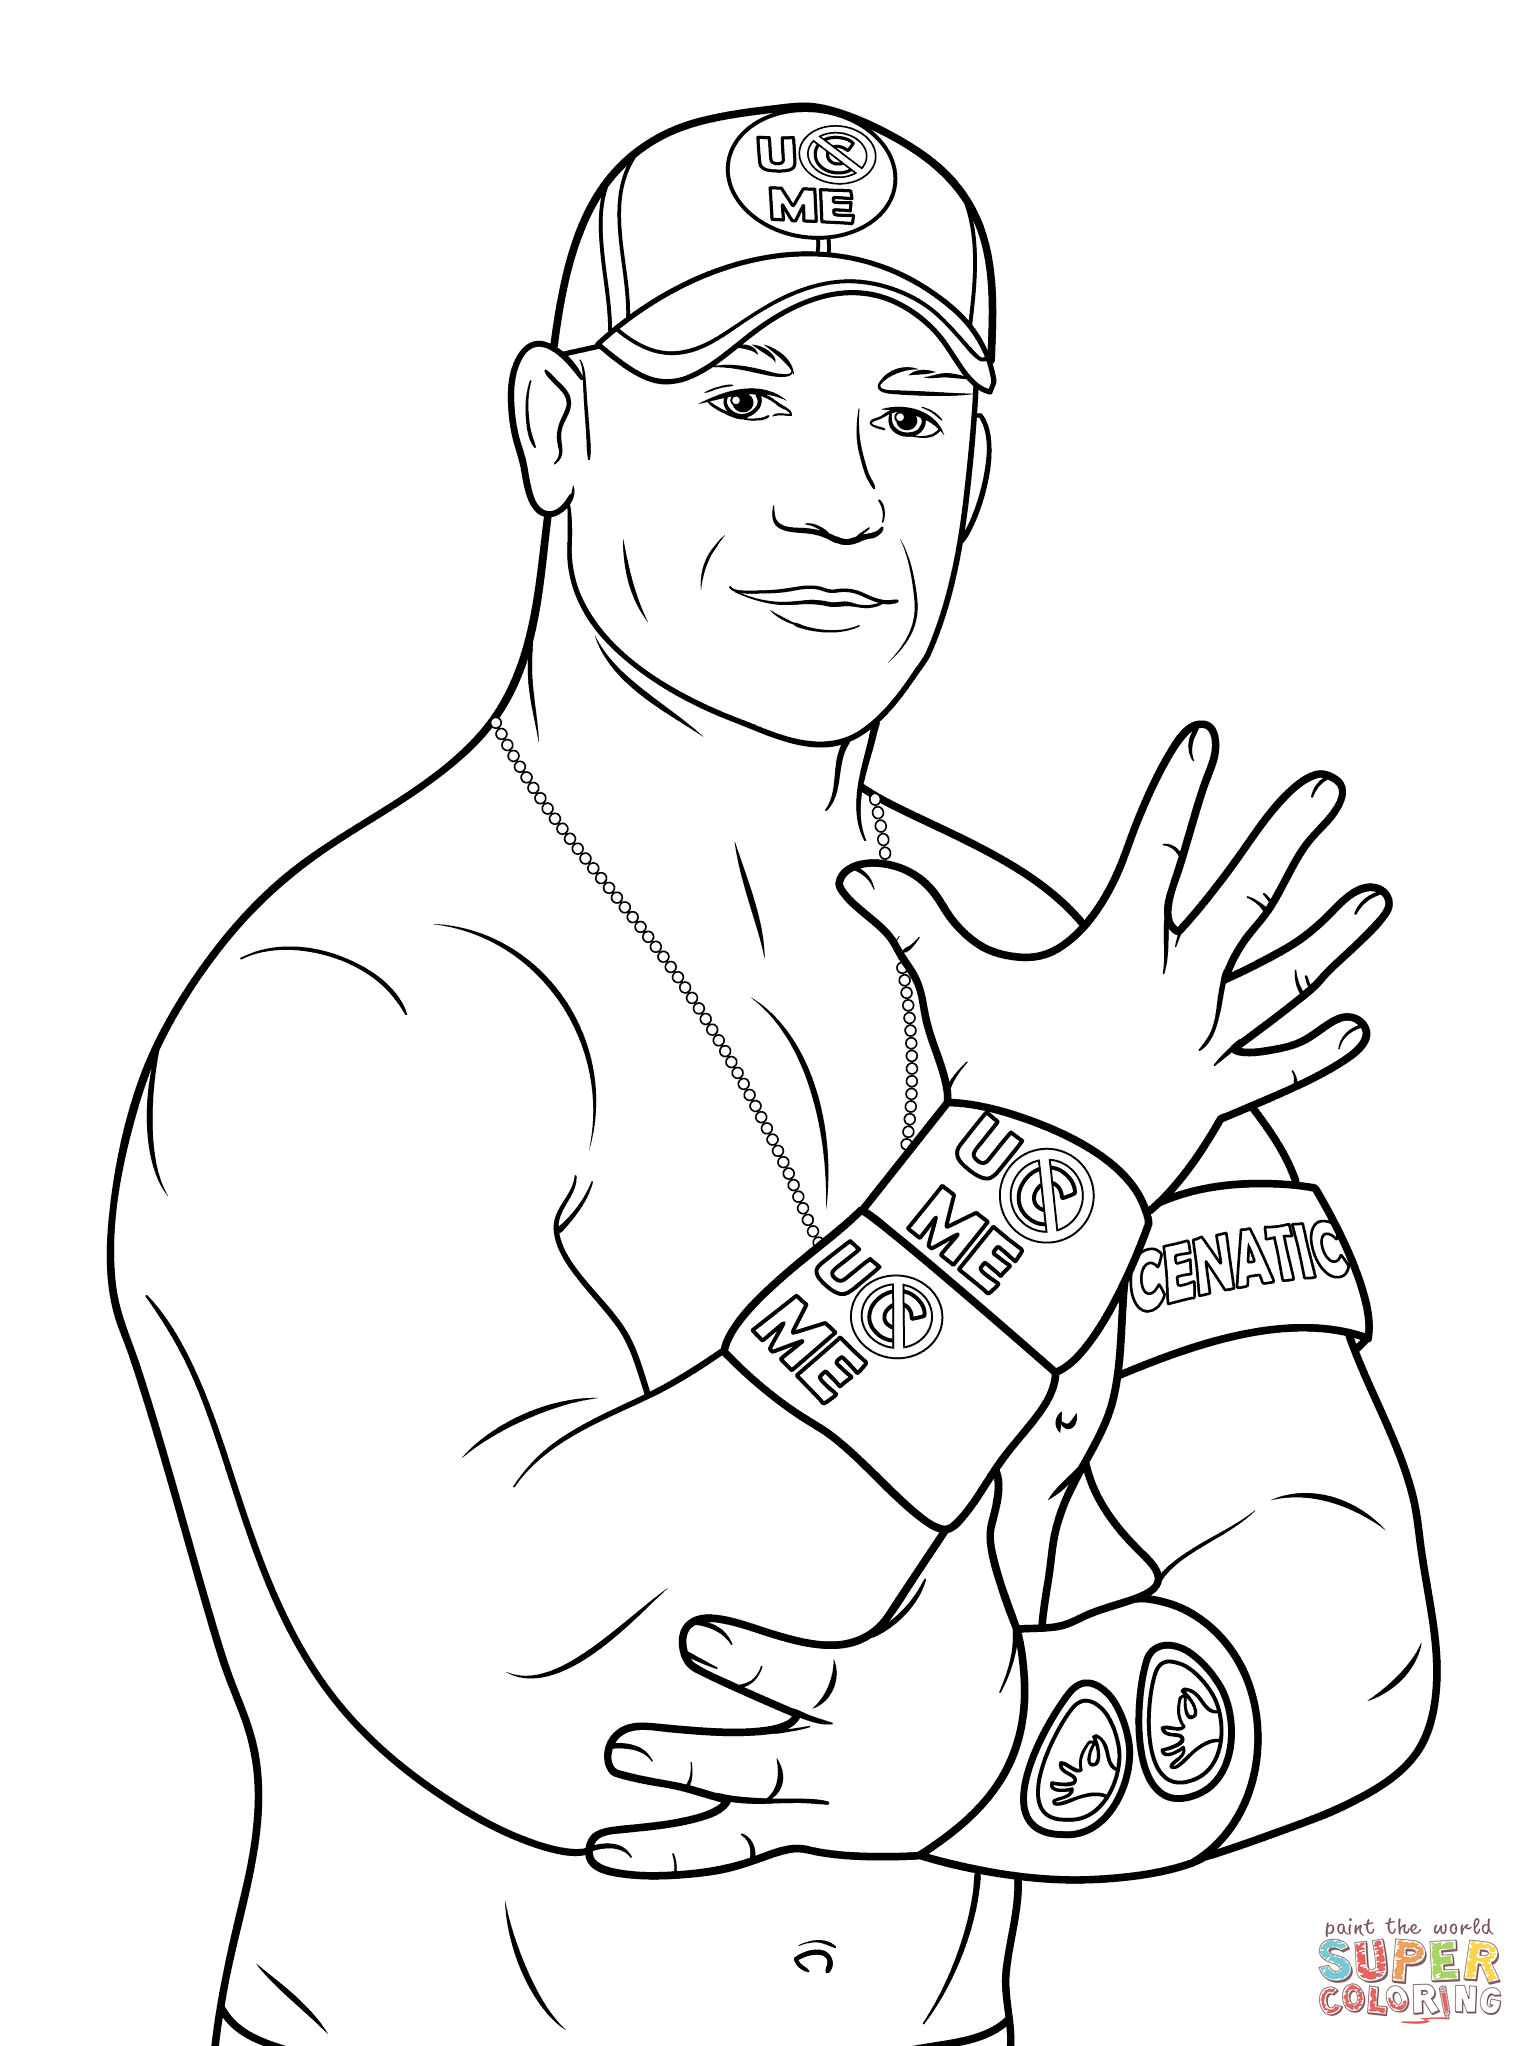 wwe coloring pages to print wwe coloring pages roman reigns coloring home print pages wwe to coloring